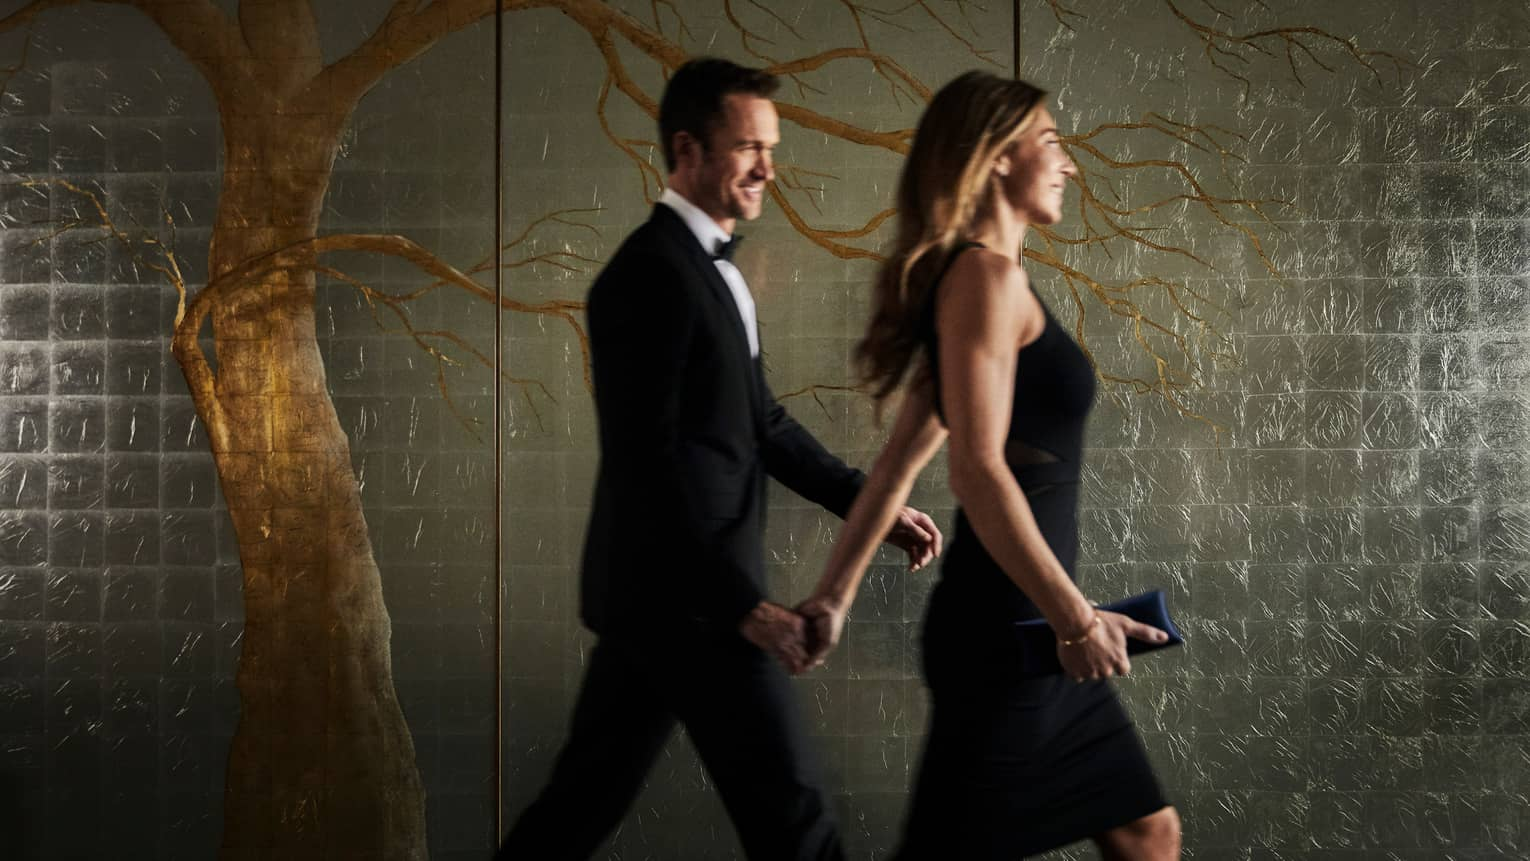 Man in tuxedo, woman in black dress walk past dark, frosted glass wall with tree mural